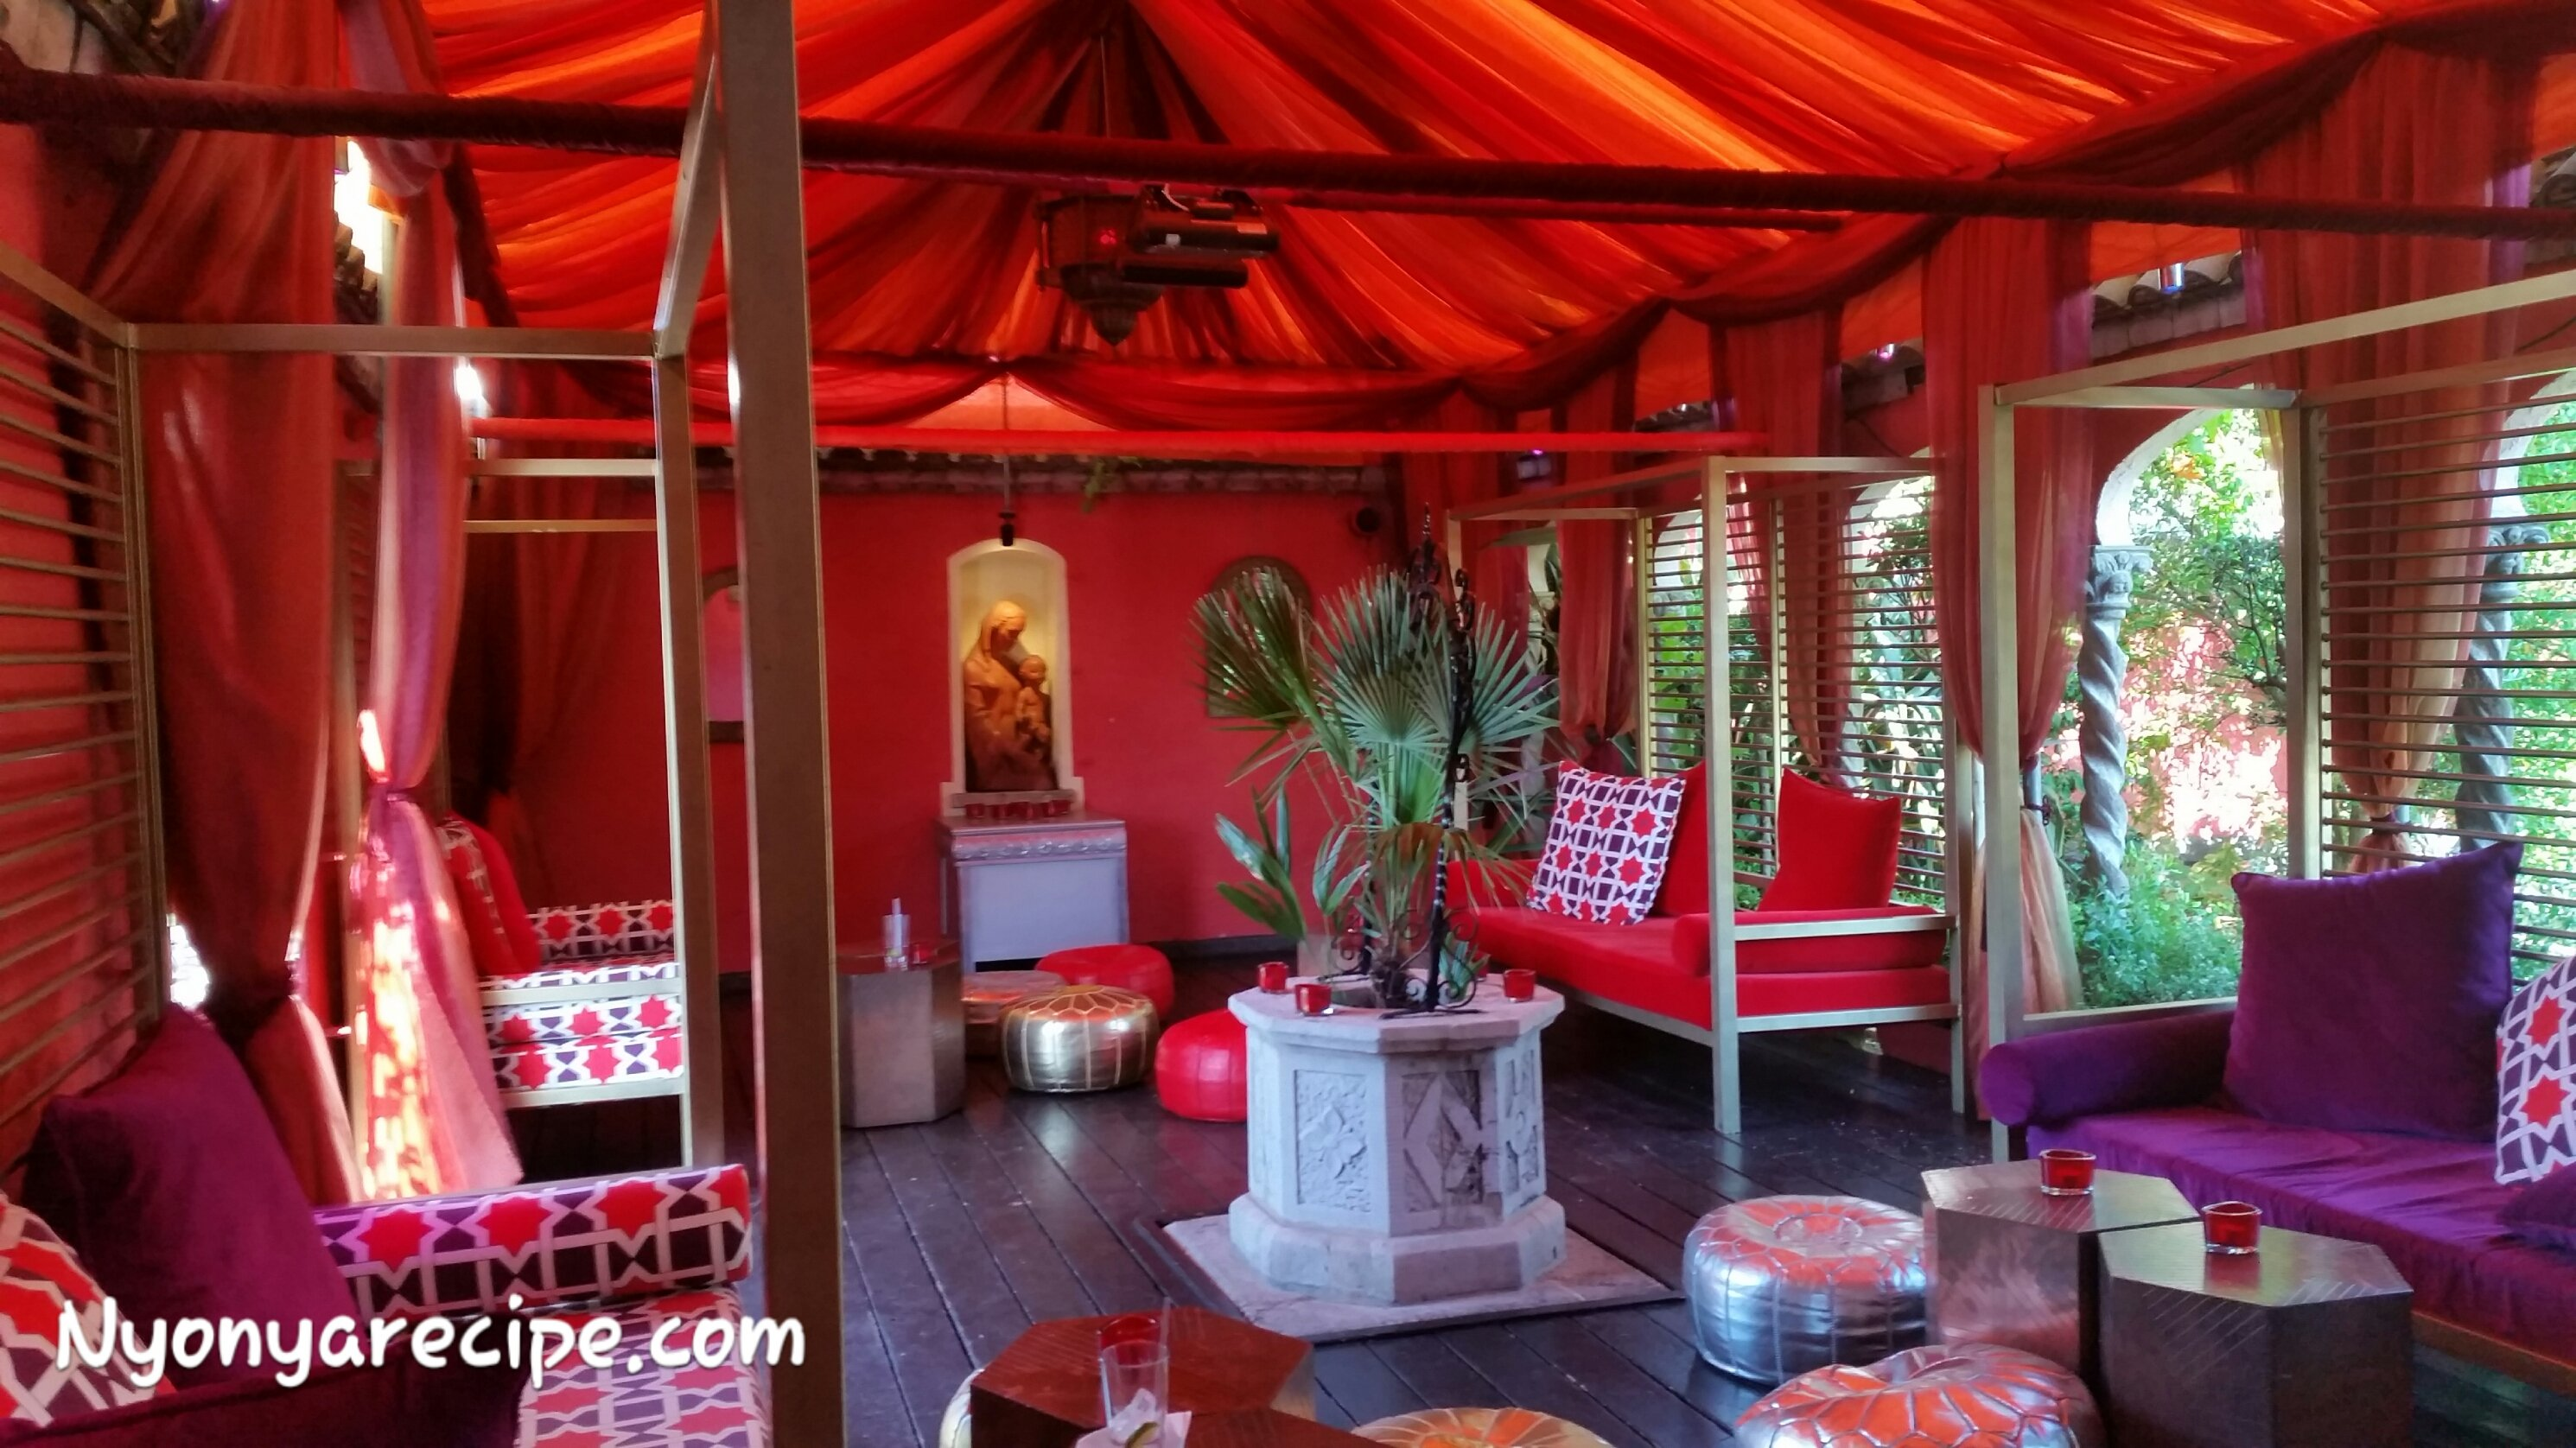 The Middle Eastern theme rest area at rhe end of the garden. A great place to have a drink and relax.